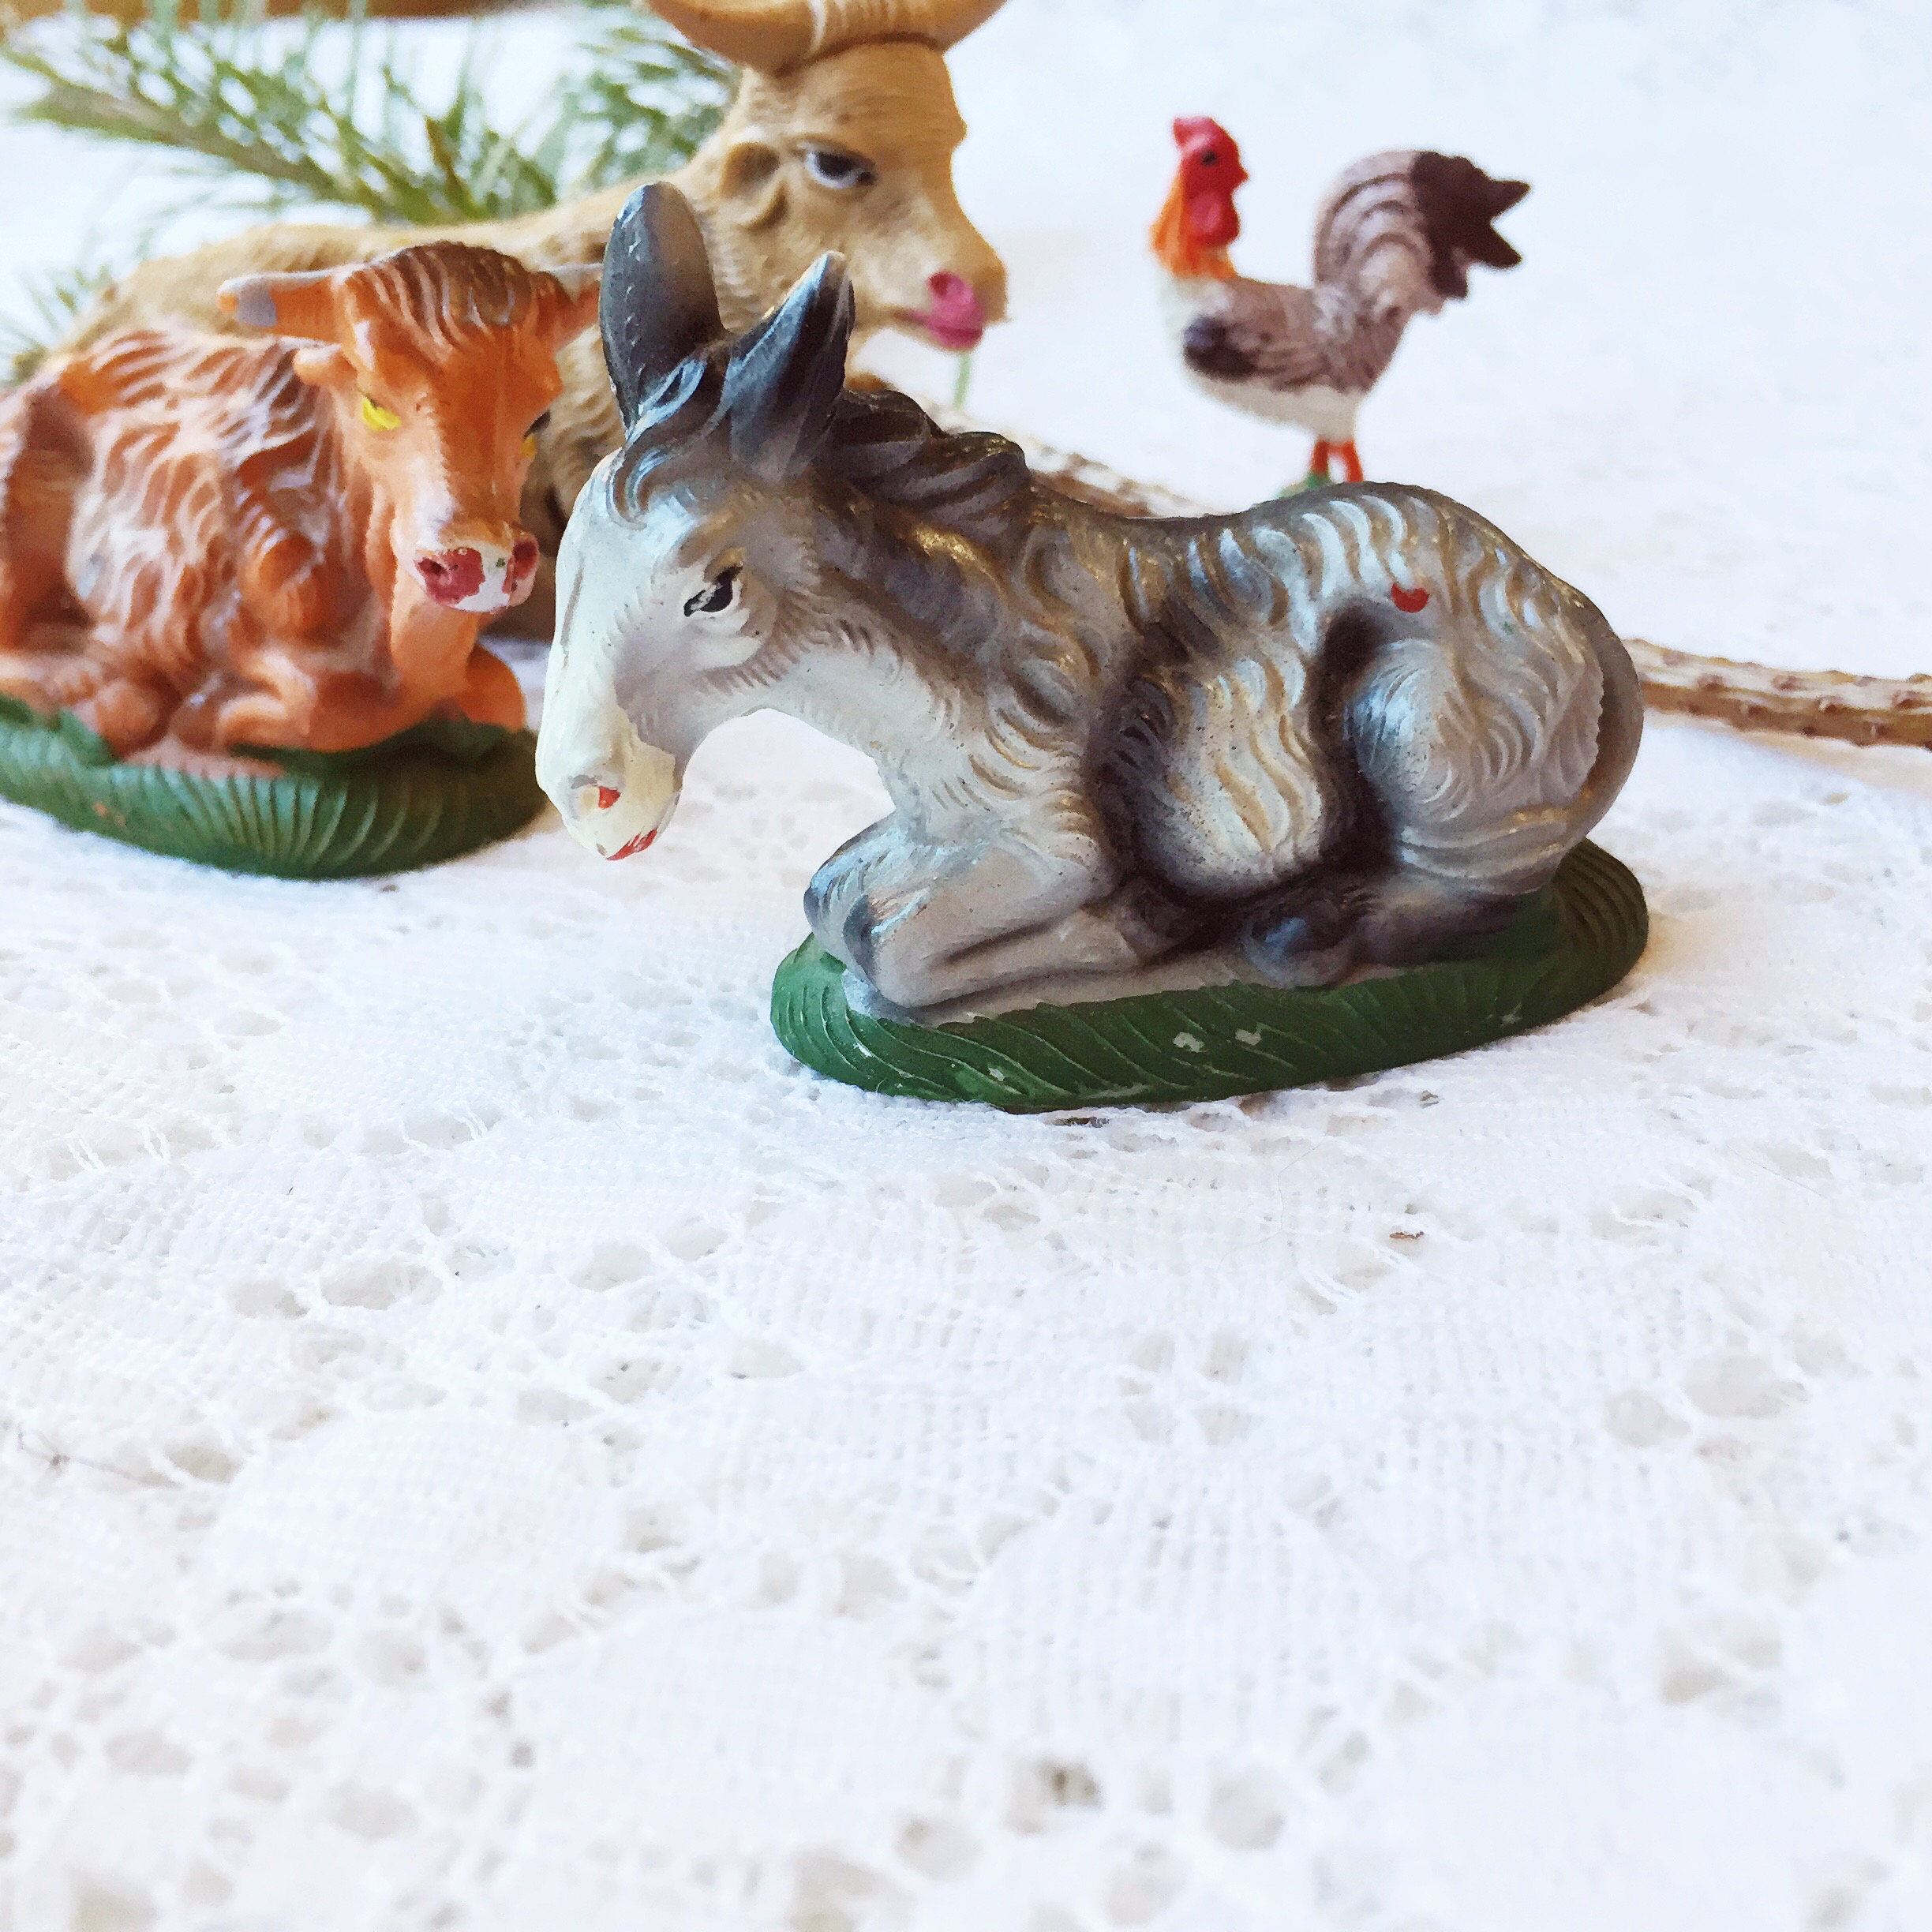 Countdown to Christmas with Vintage Nativity Set